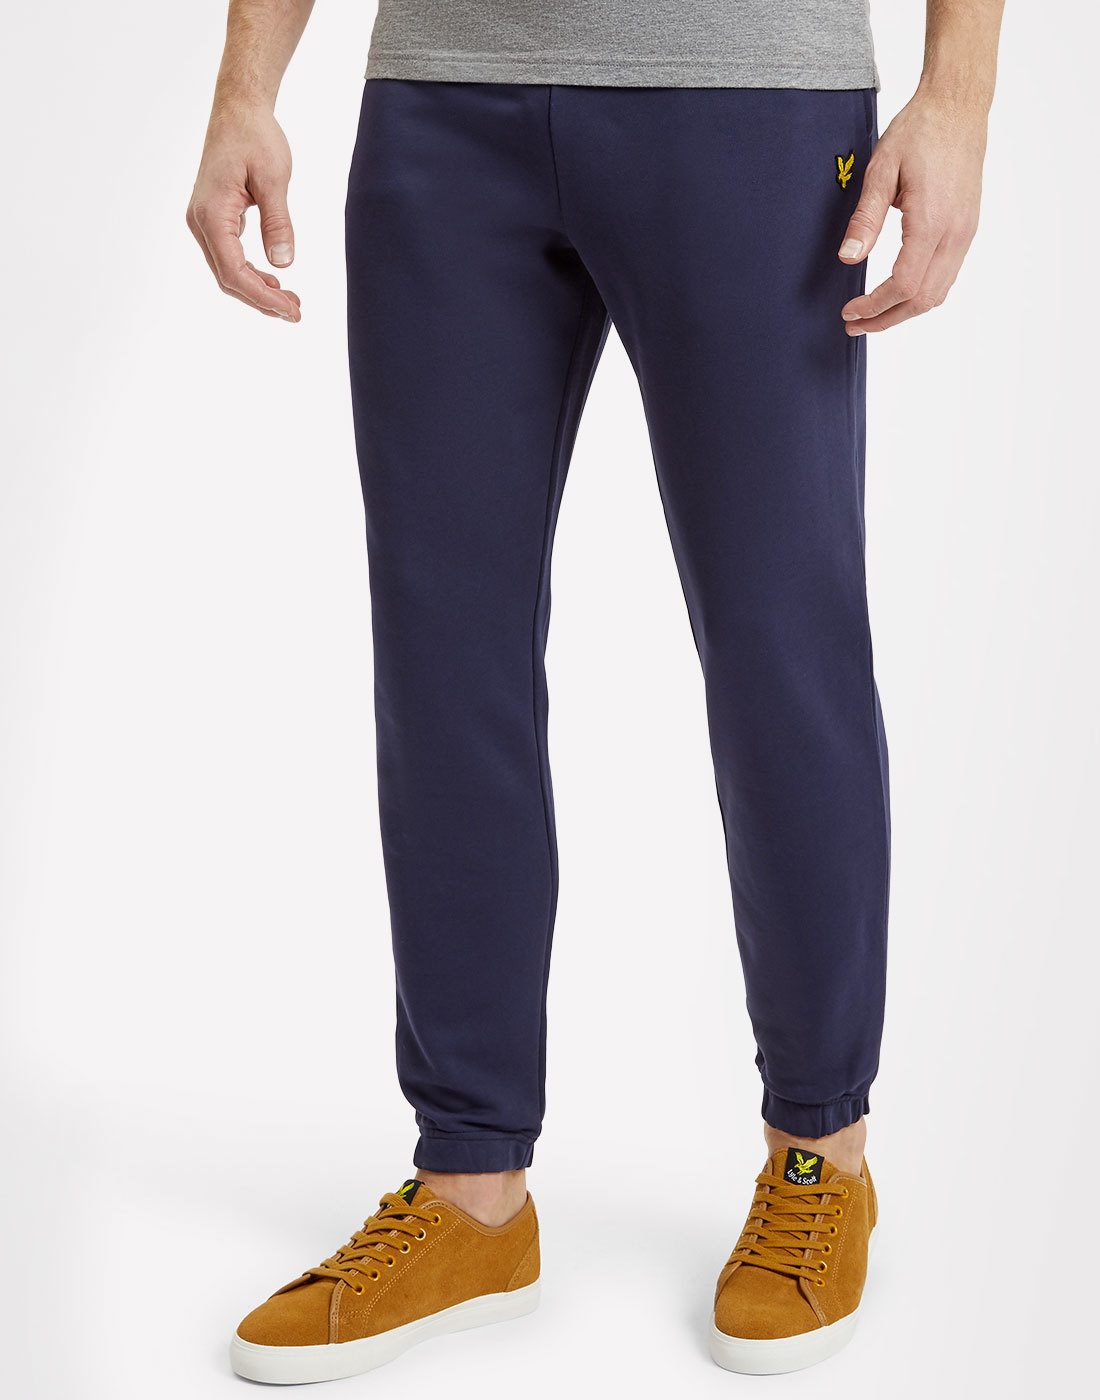 LYLE & SCOTT Retro Slim Jogger Track Bottoms NAVY